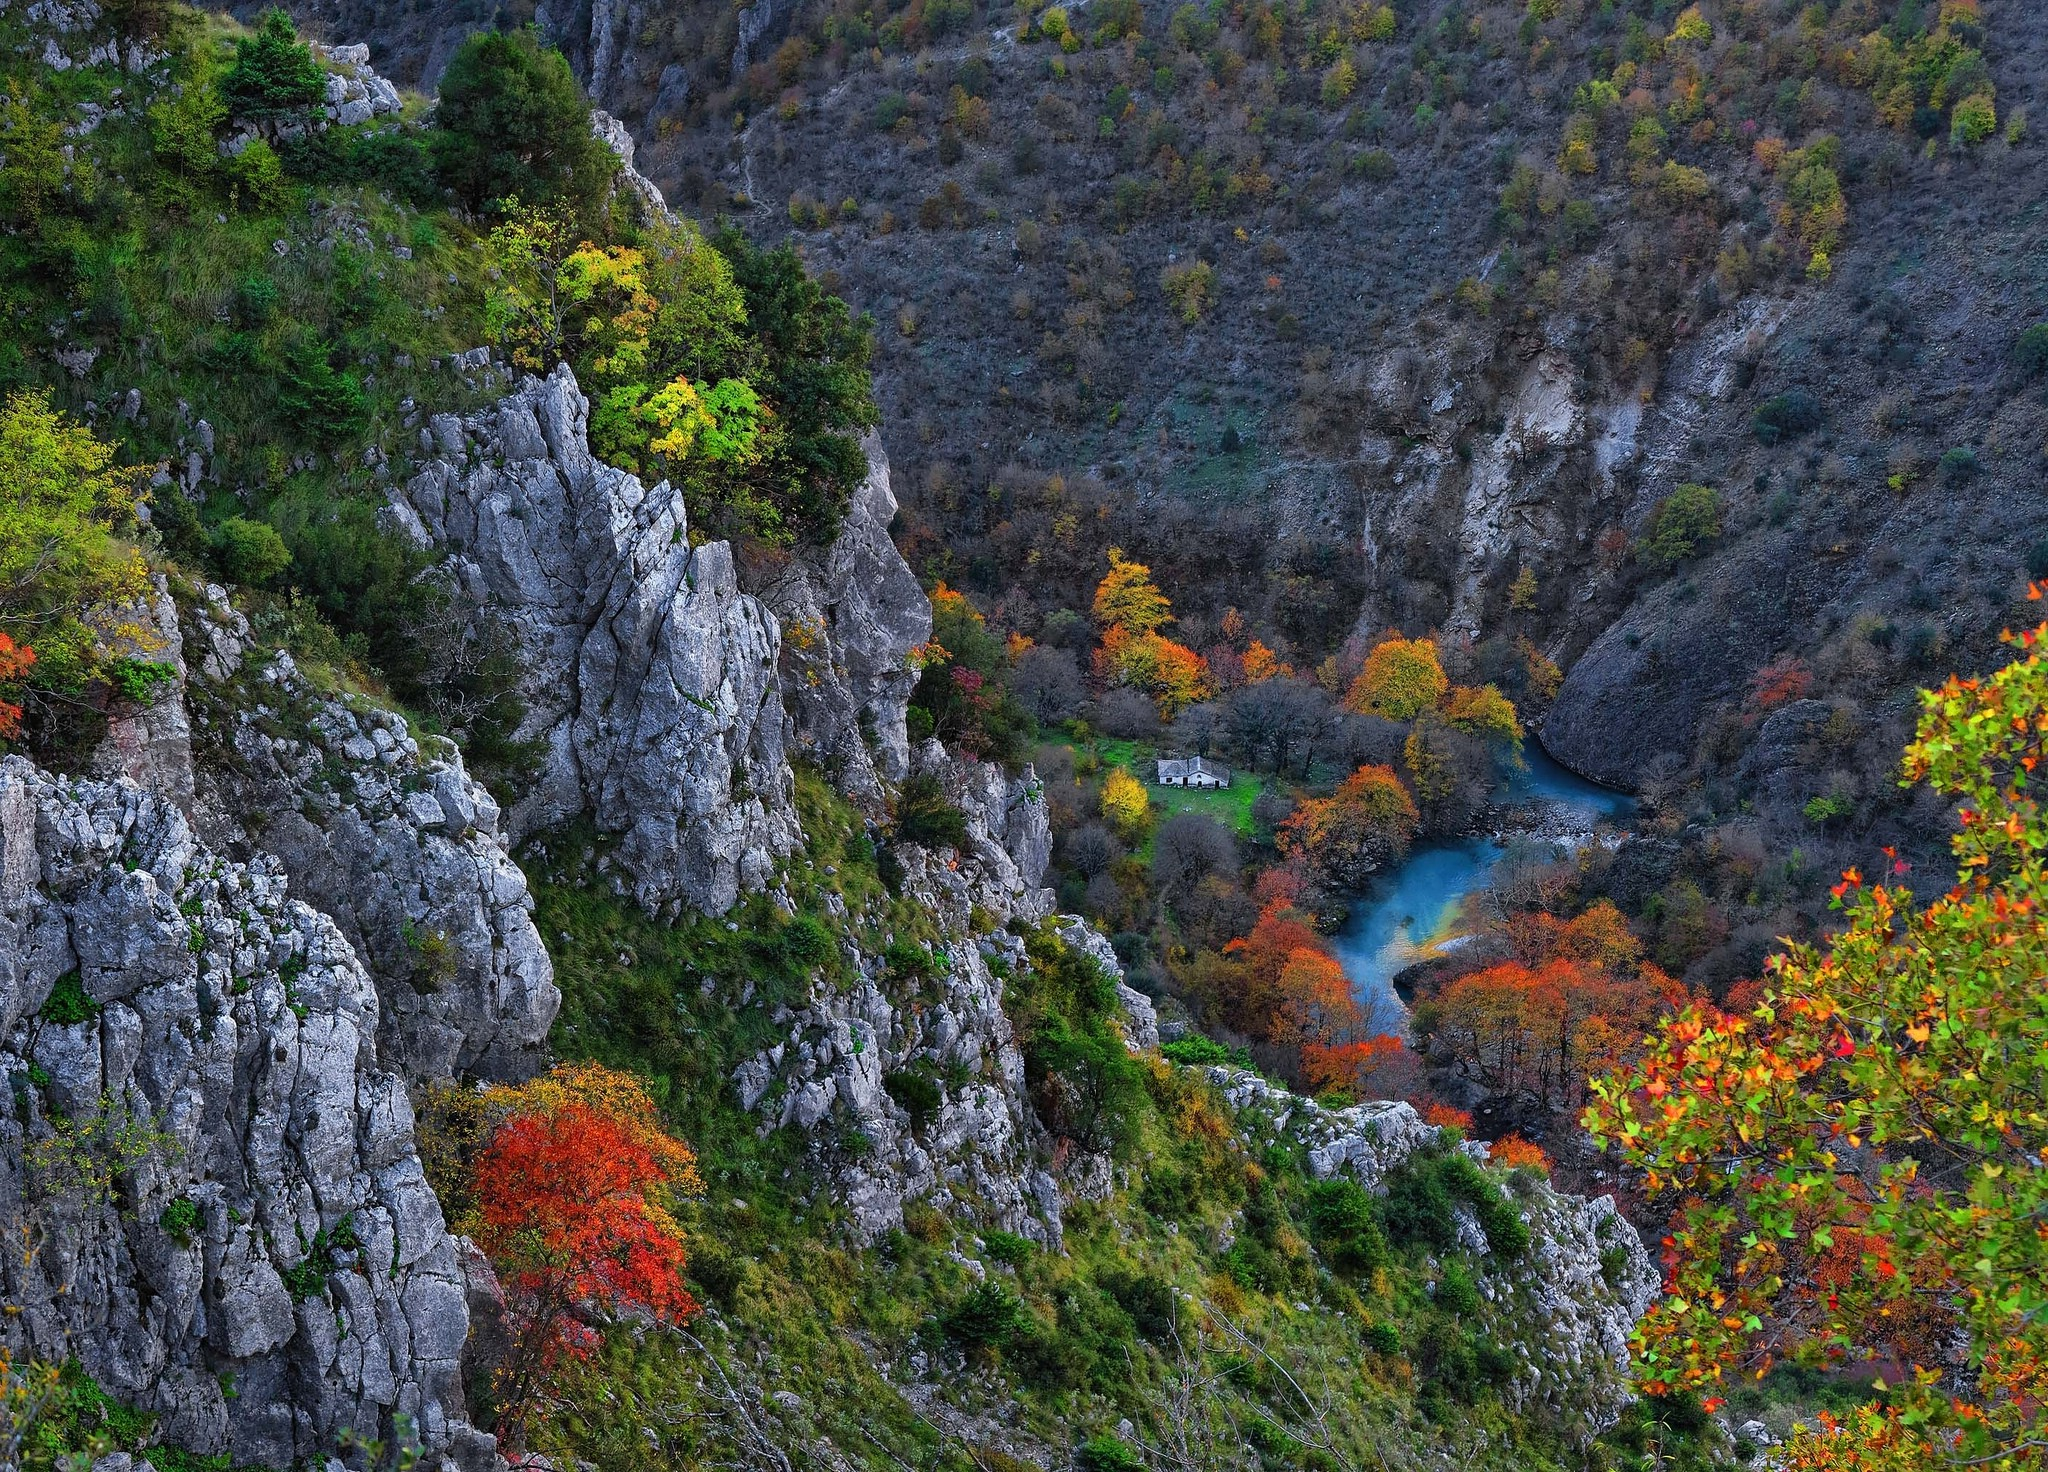 Fall Wallpaper Cars Gorge River Fall Mountain Canyon Cliff Trees Nature